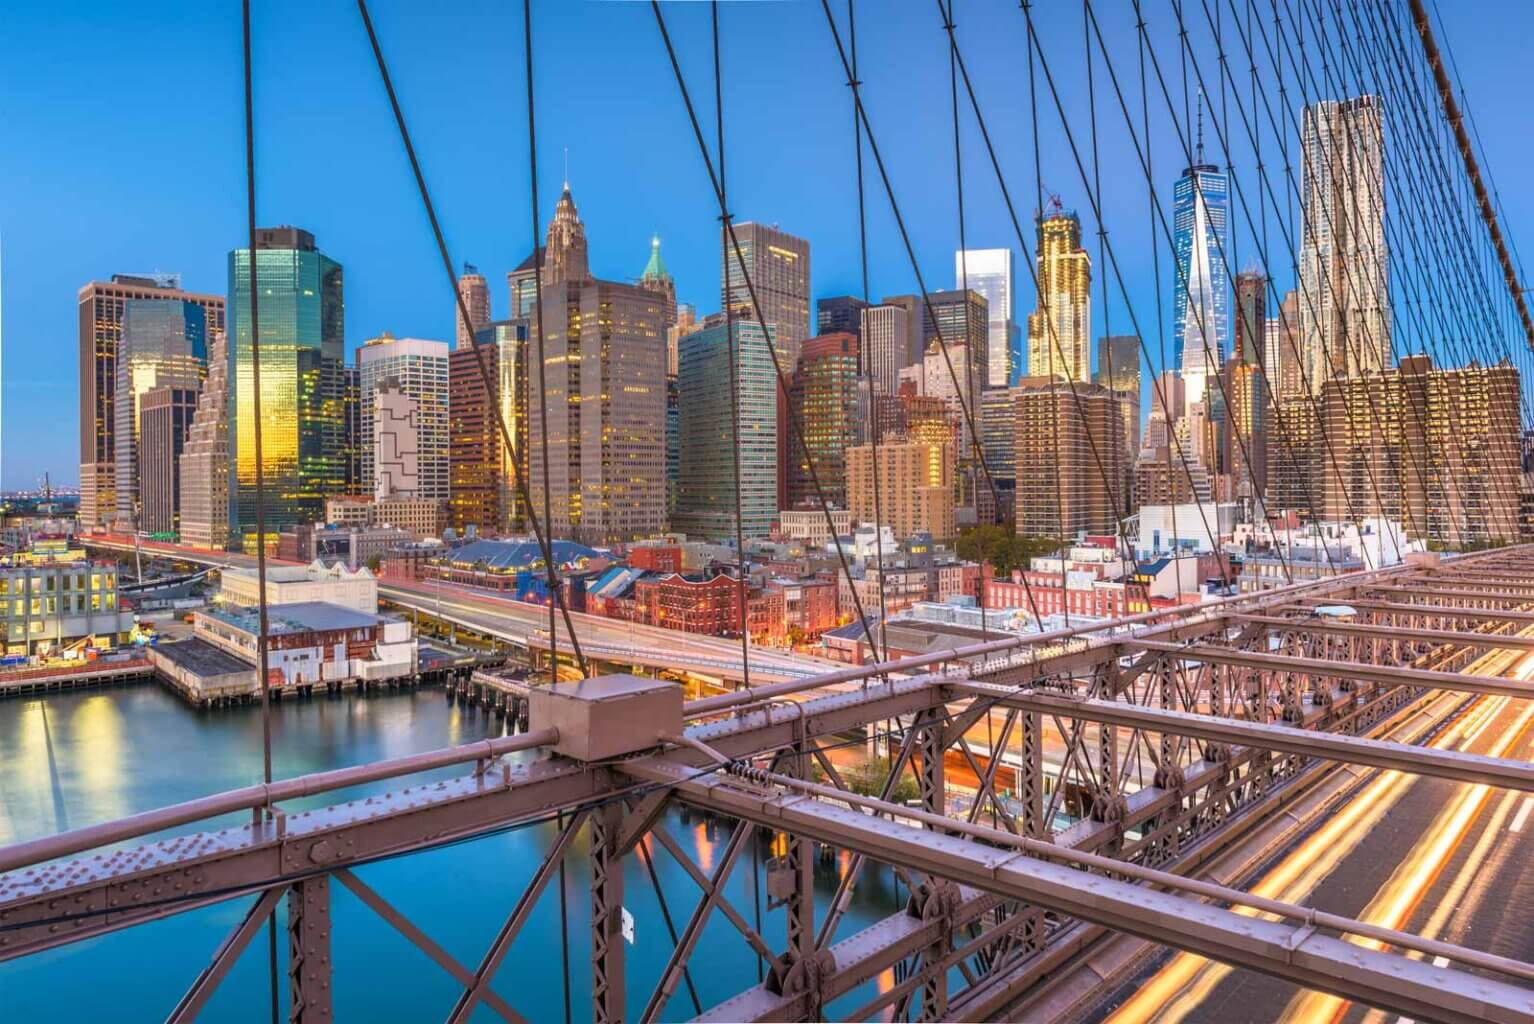 View of Brooklyn Bridge with Car Trails and Lower Manhattan Skyline at Sunset